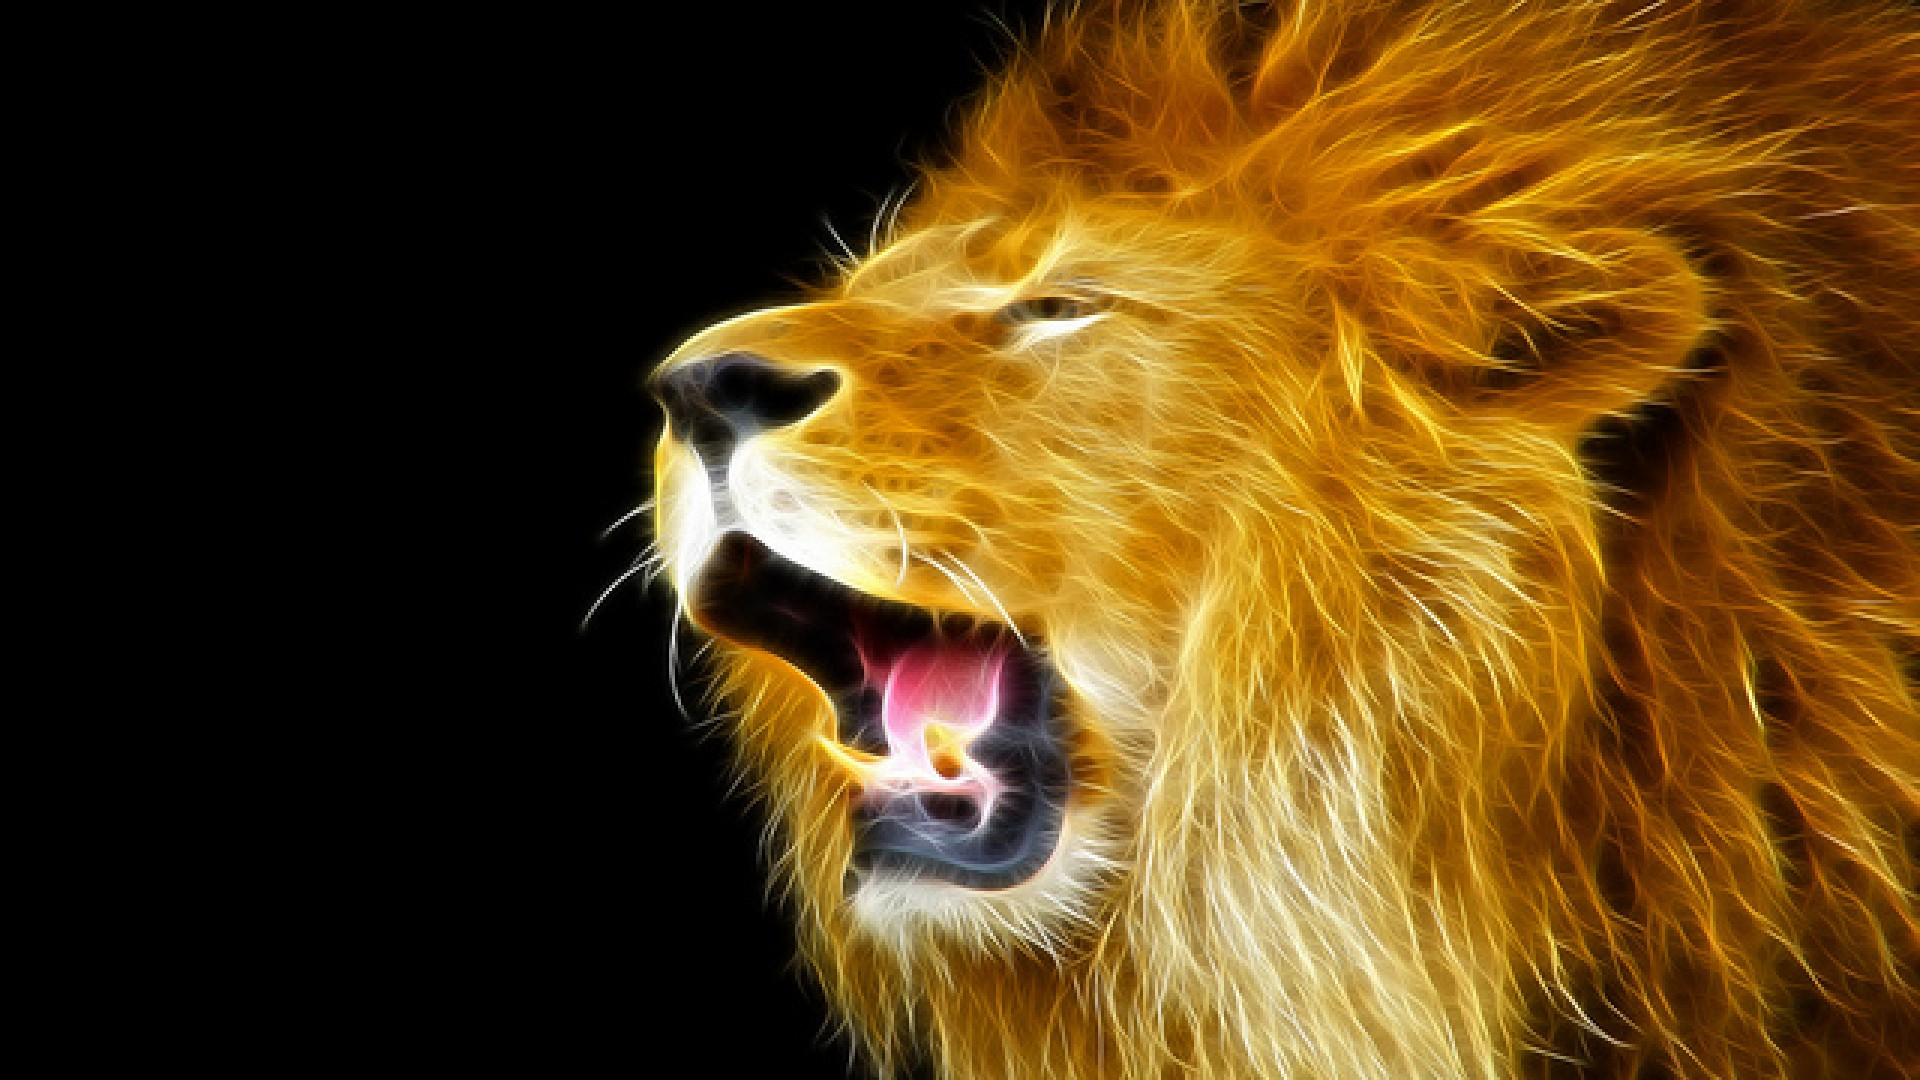 Download <b>1920x1080</b> Lion With A Ship Reflection In His Eye <b>Wallpaper</b>